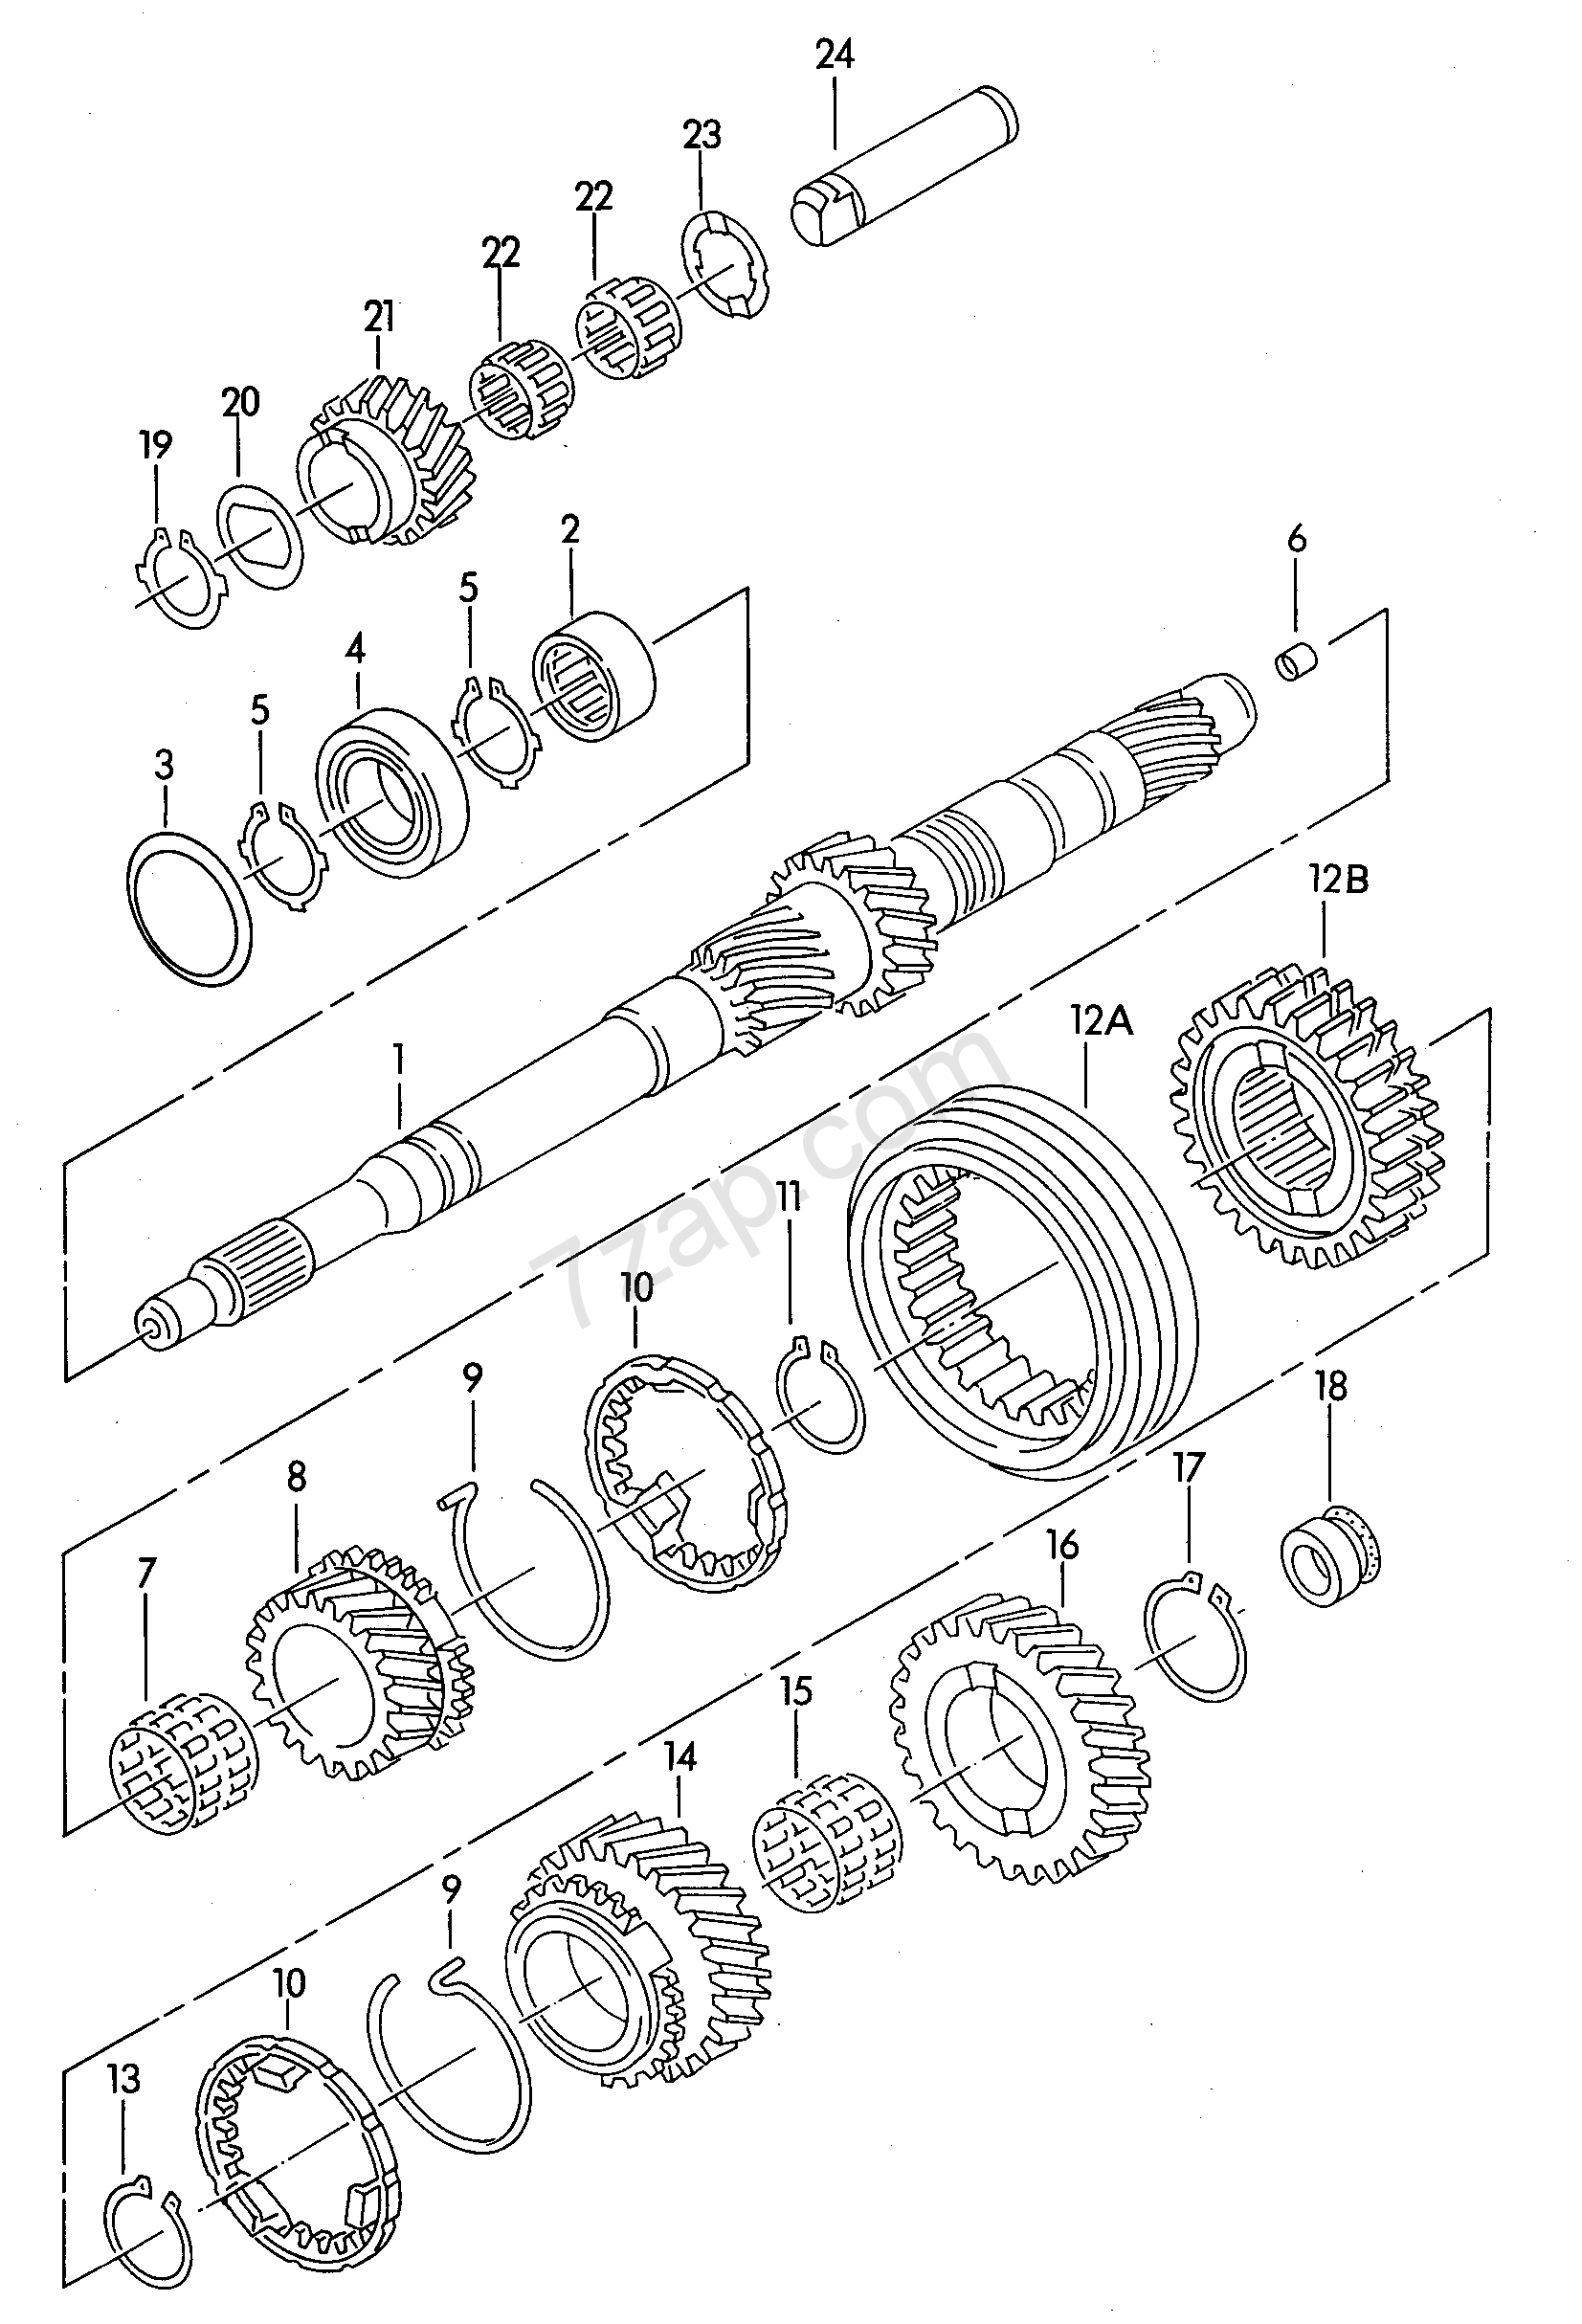 input shaft; gears and shafts; for 5 speed manual